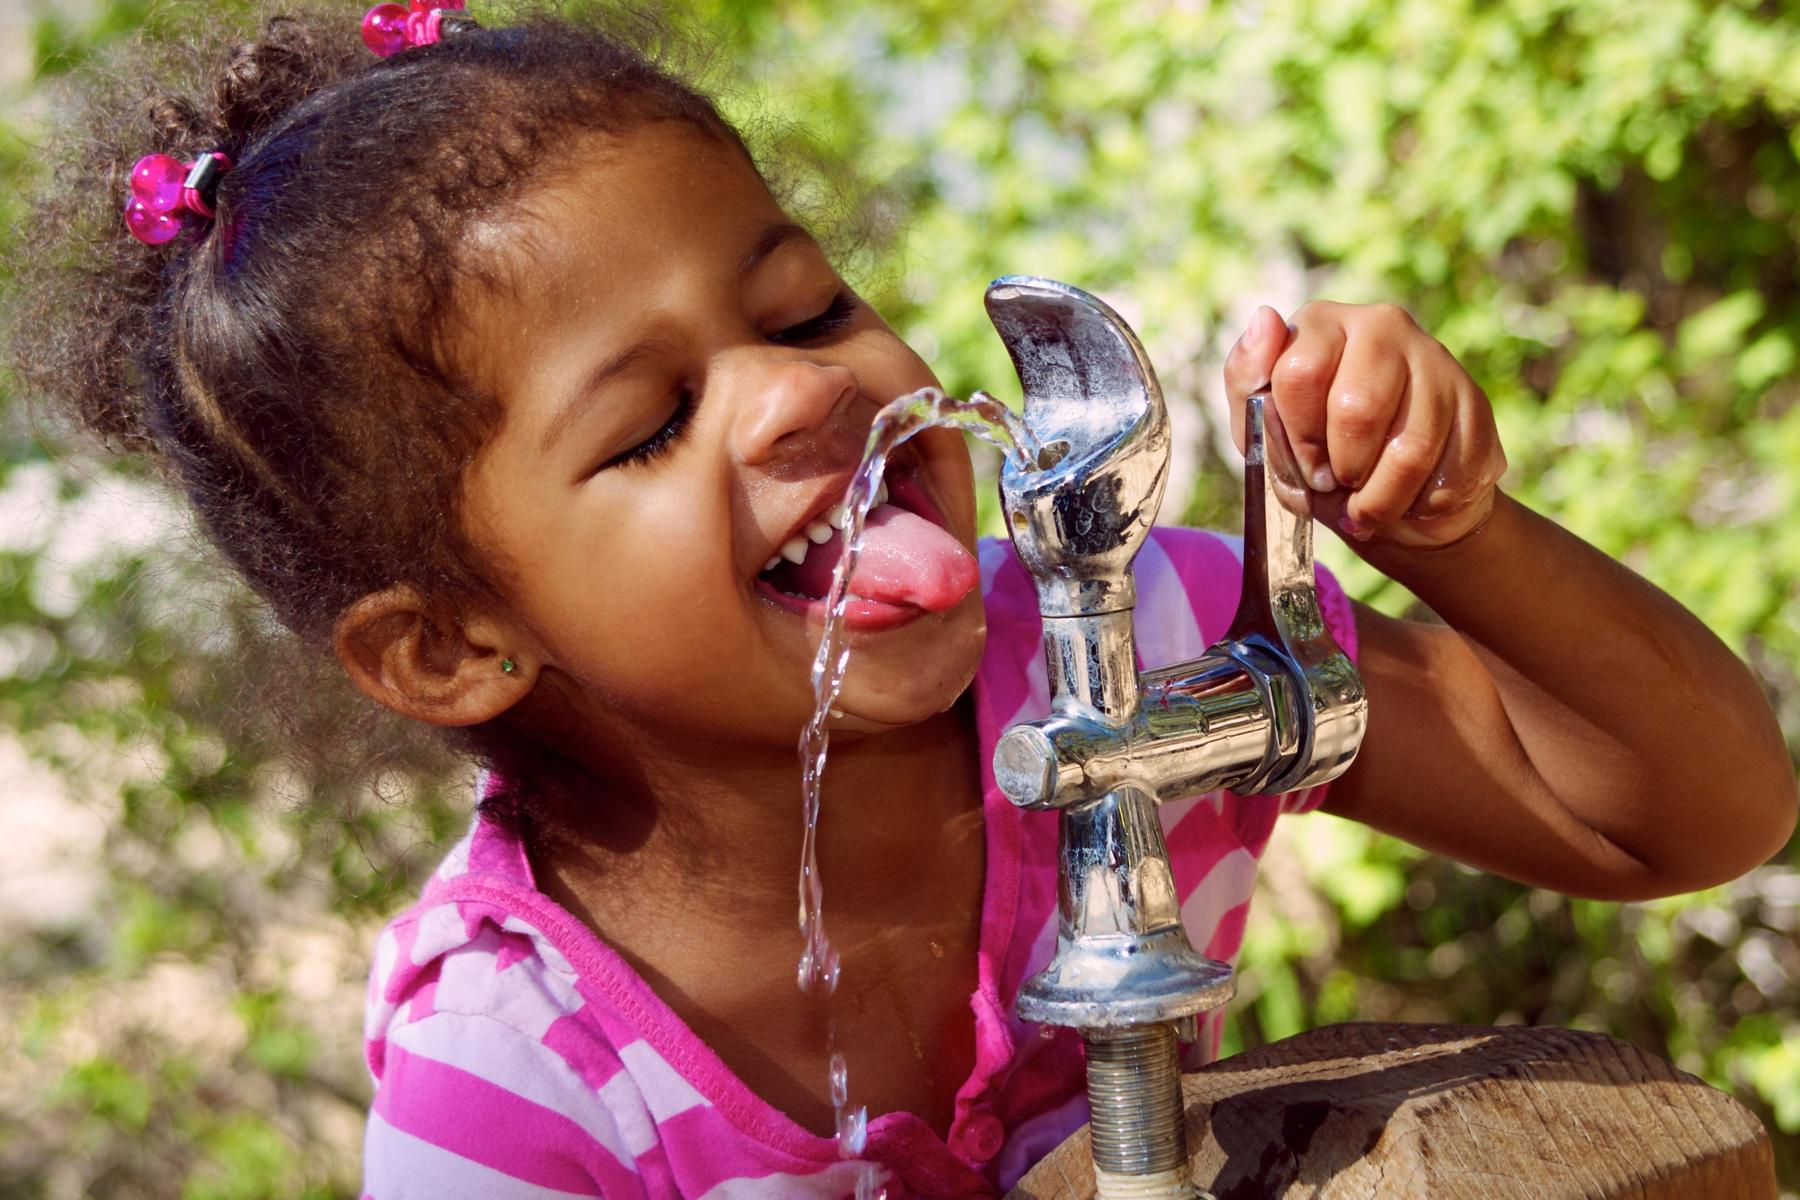 Little Girl Drinking Water From Water Fountain